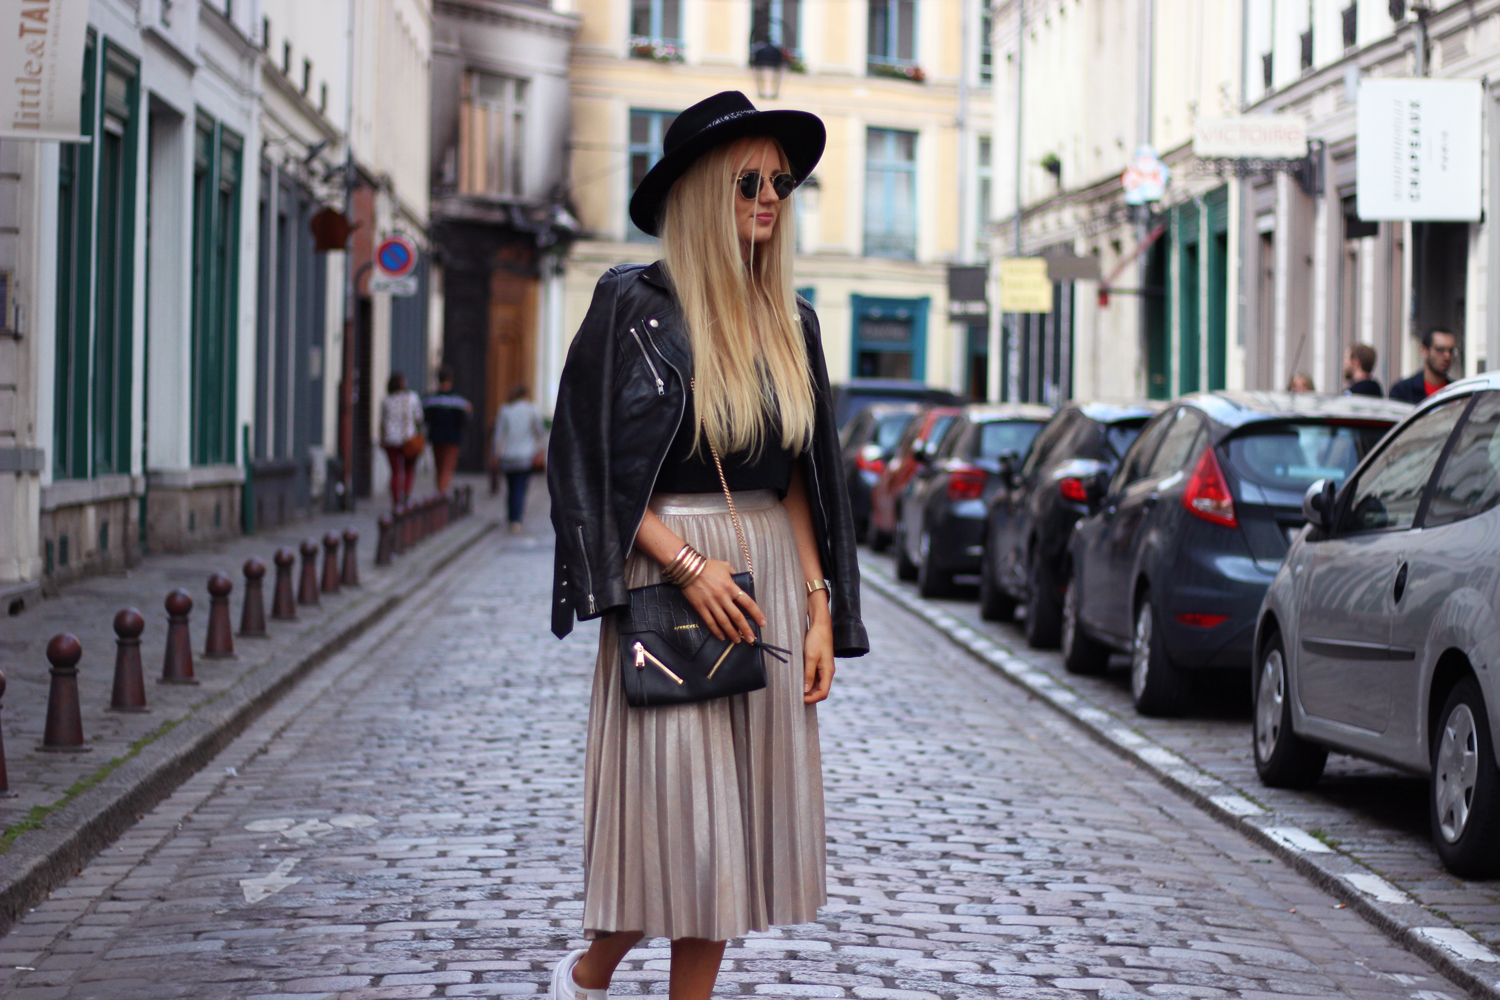 Zara Metallic gold skirt outfit mode tenue